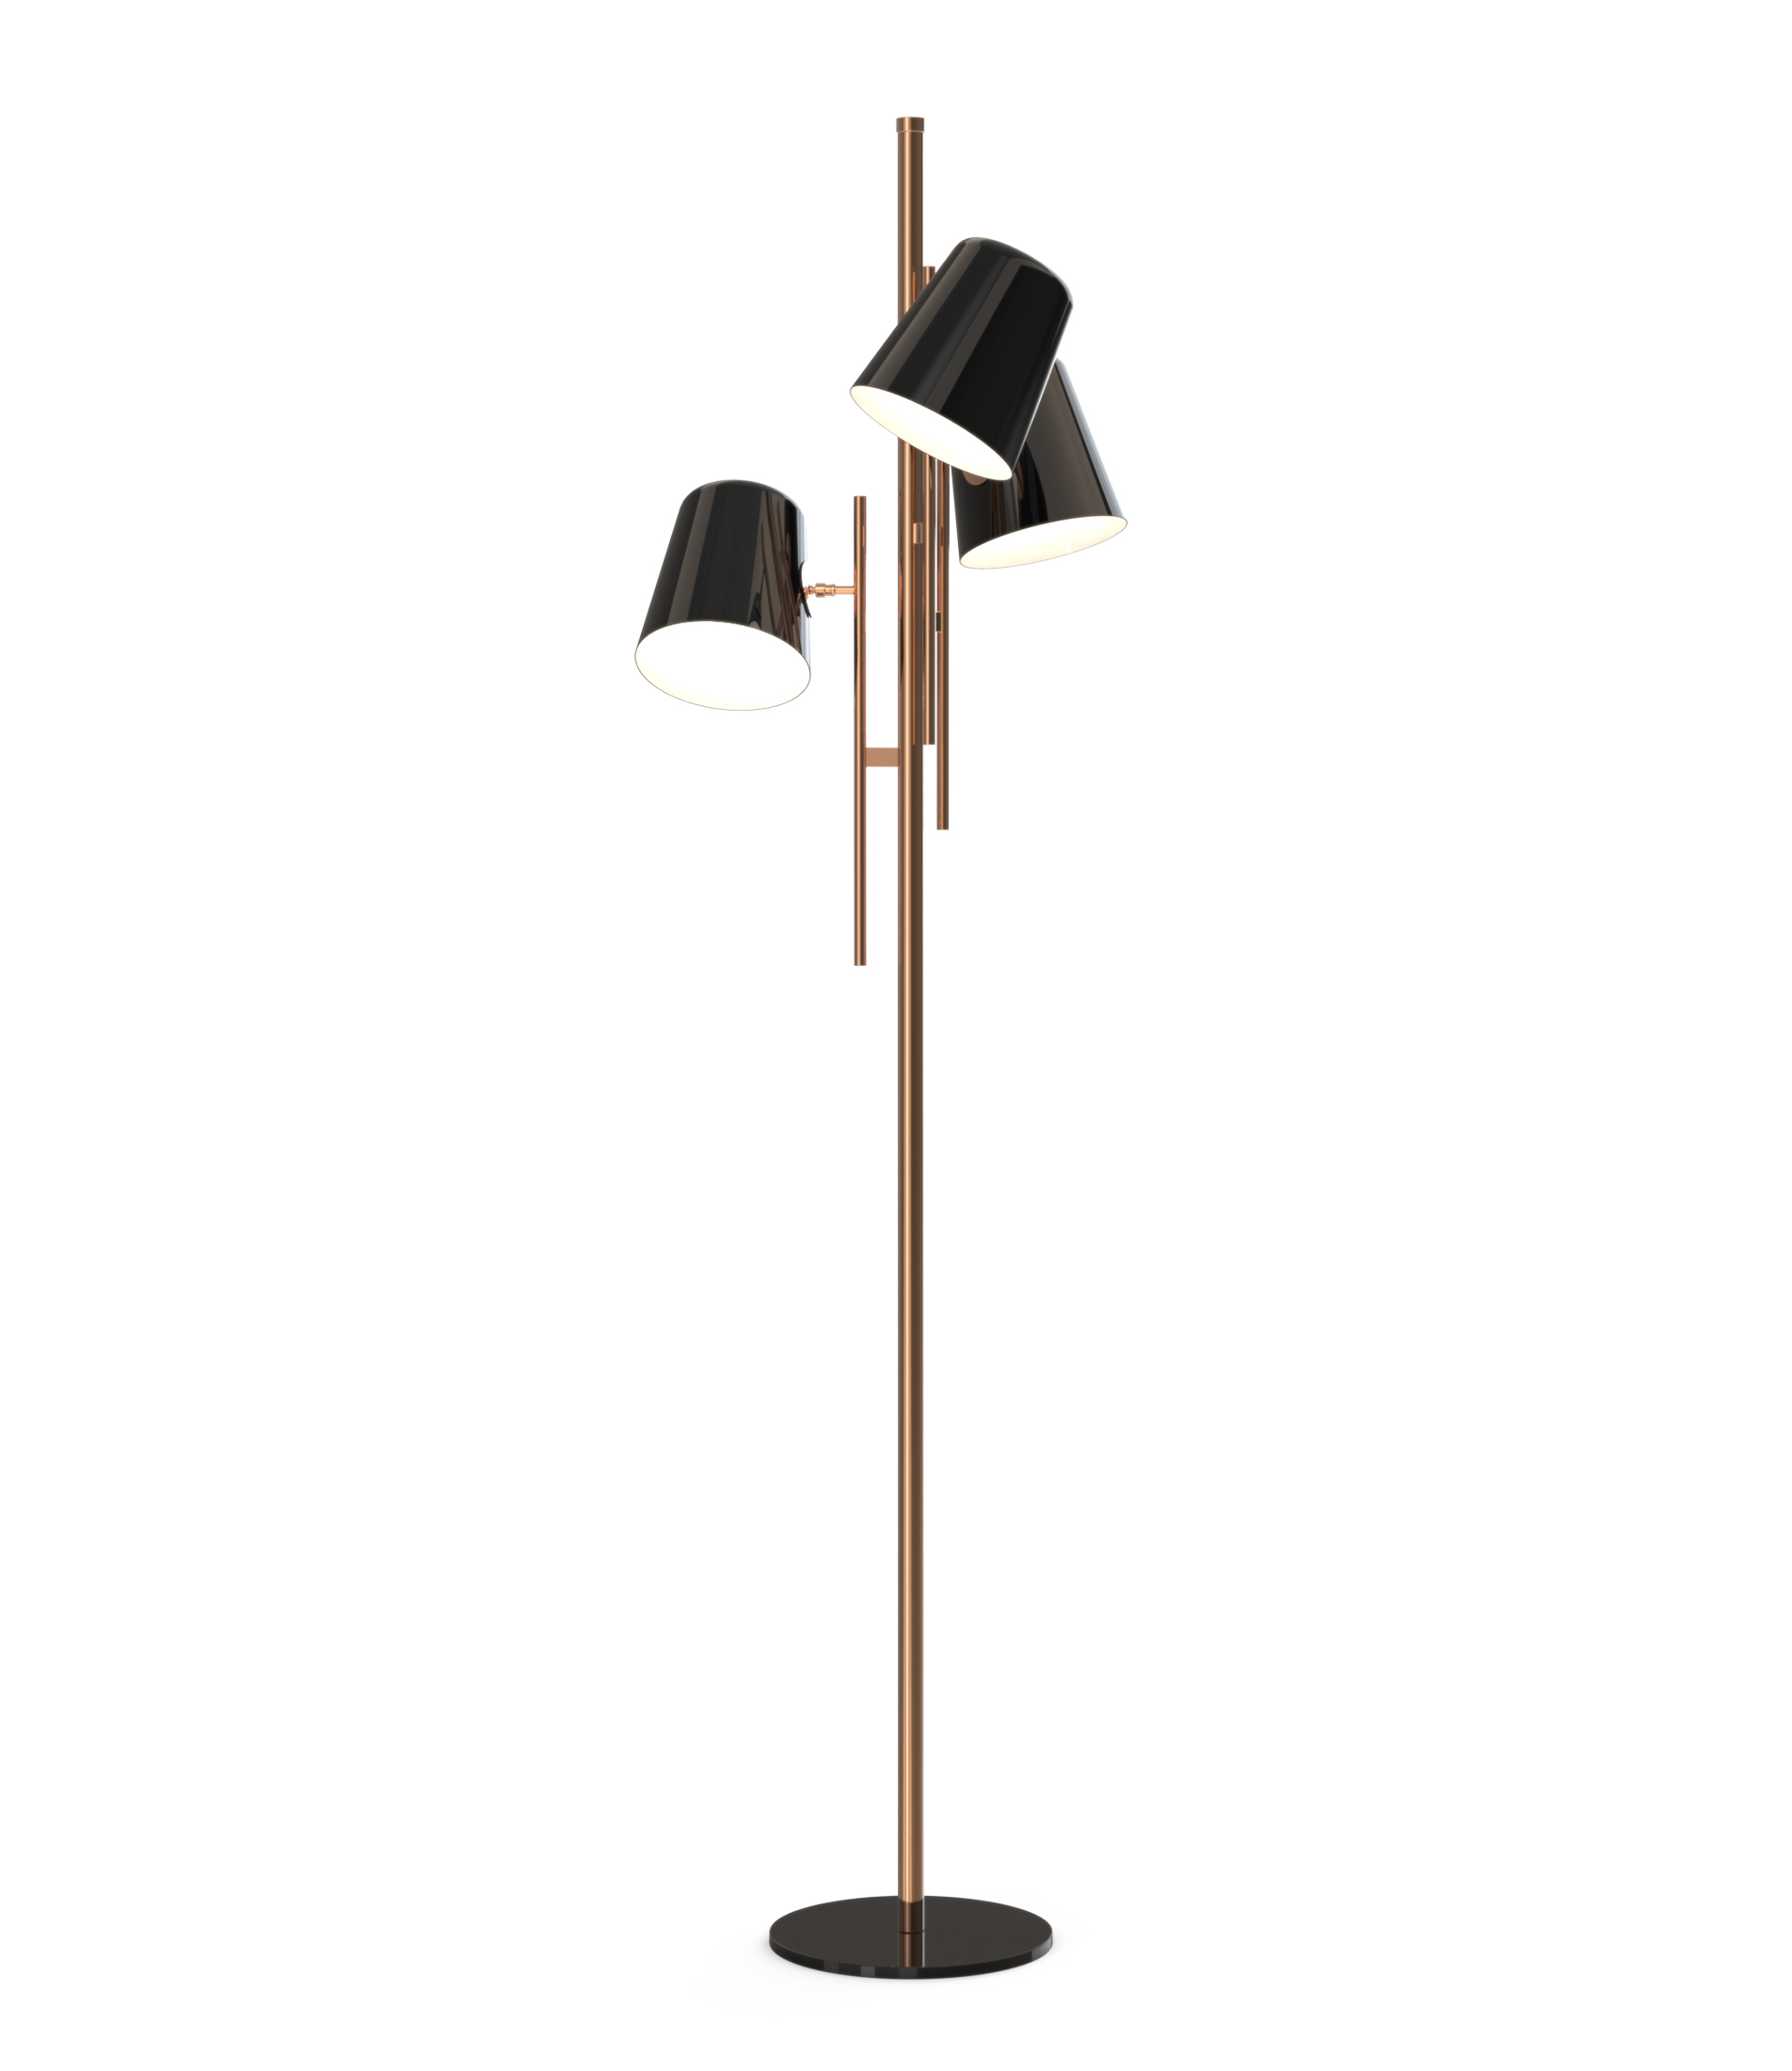 Bright Ideas A Modern Floor Lamp for a Relaxing Atmosphere 1 modern floor lamp Bright Ideas: A Modern Floor Lamp for a Relaxing Atmosphere Bright Ideas A Modern Floor Lamp for a Relaxing Atmosphere 1